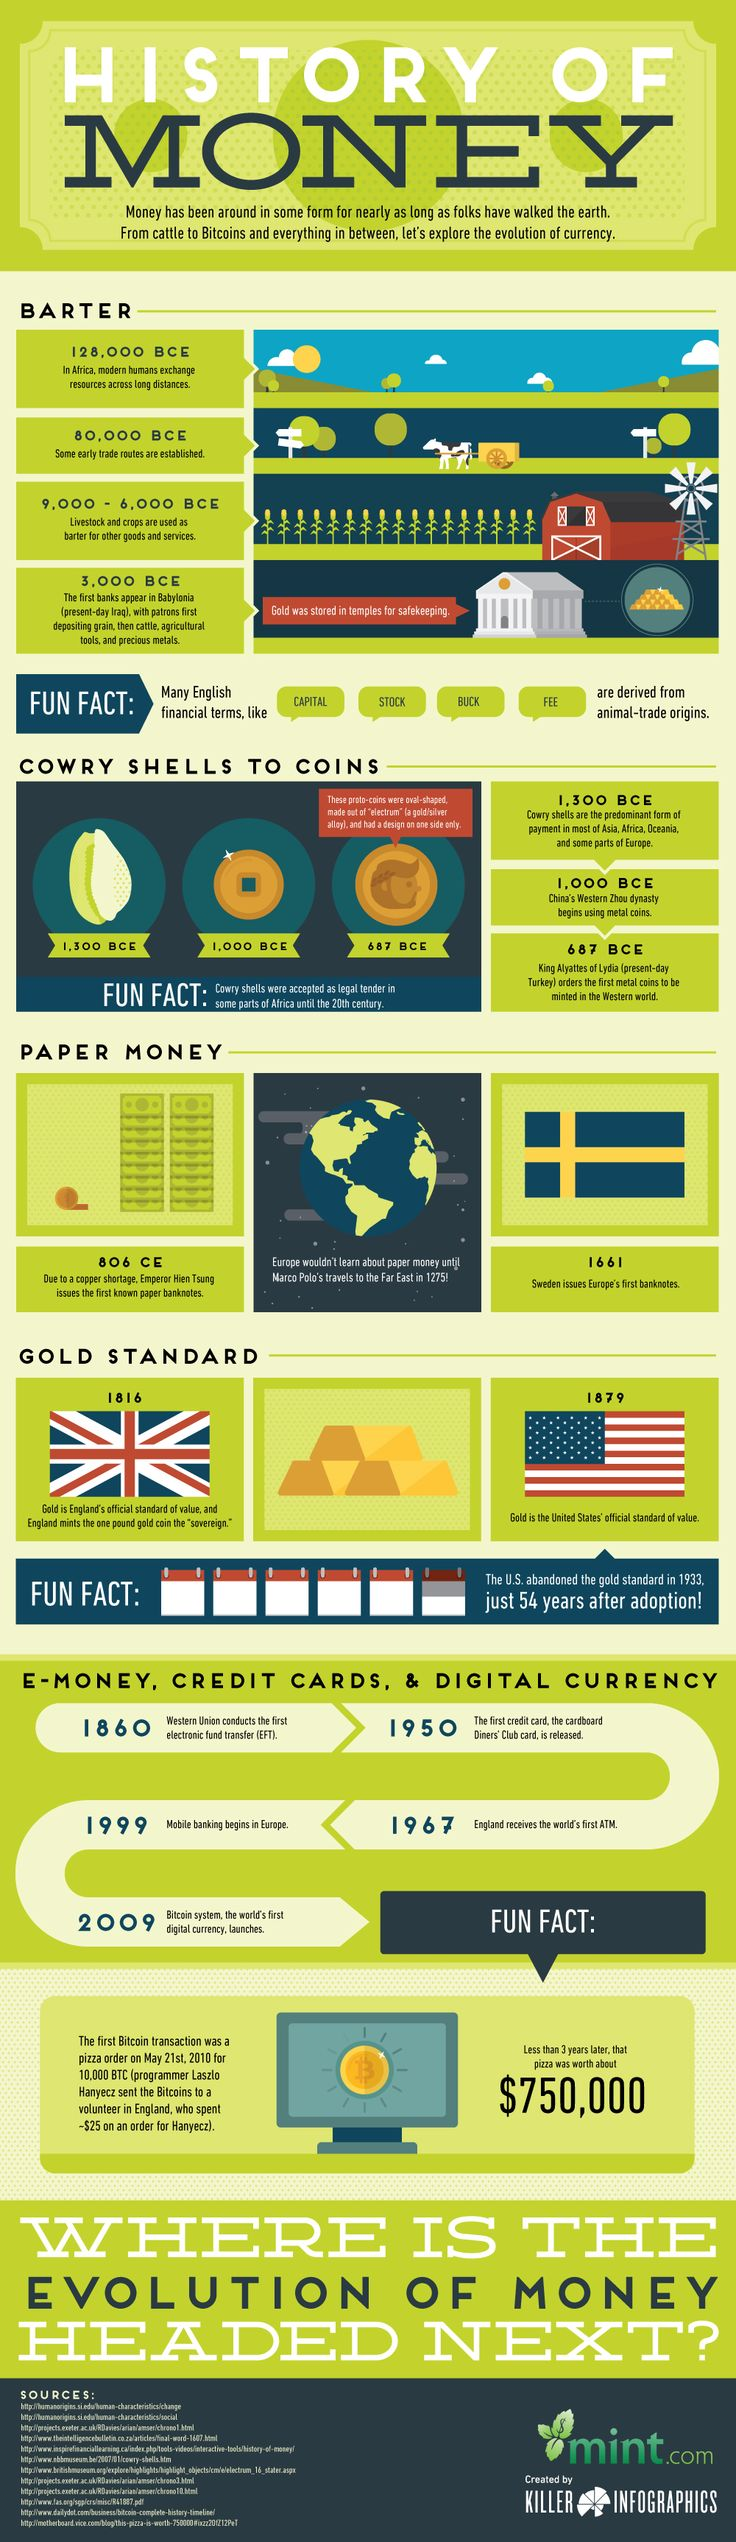 The history of money in one infographic - Business Insider